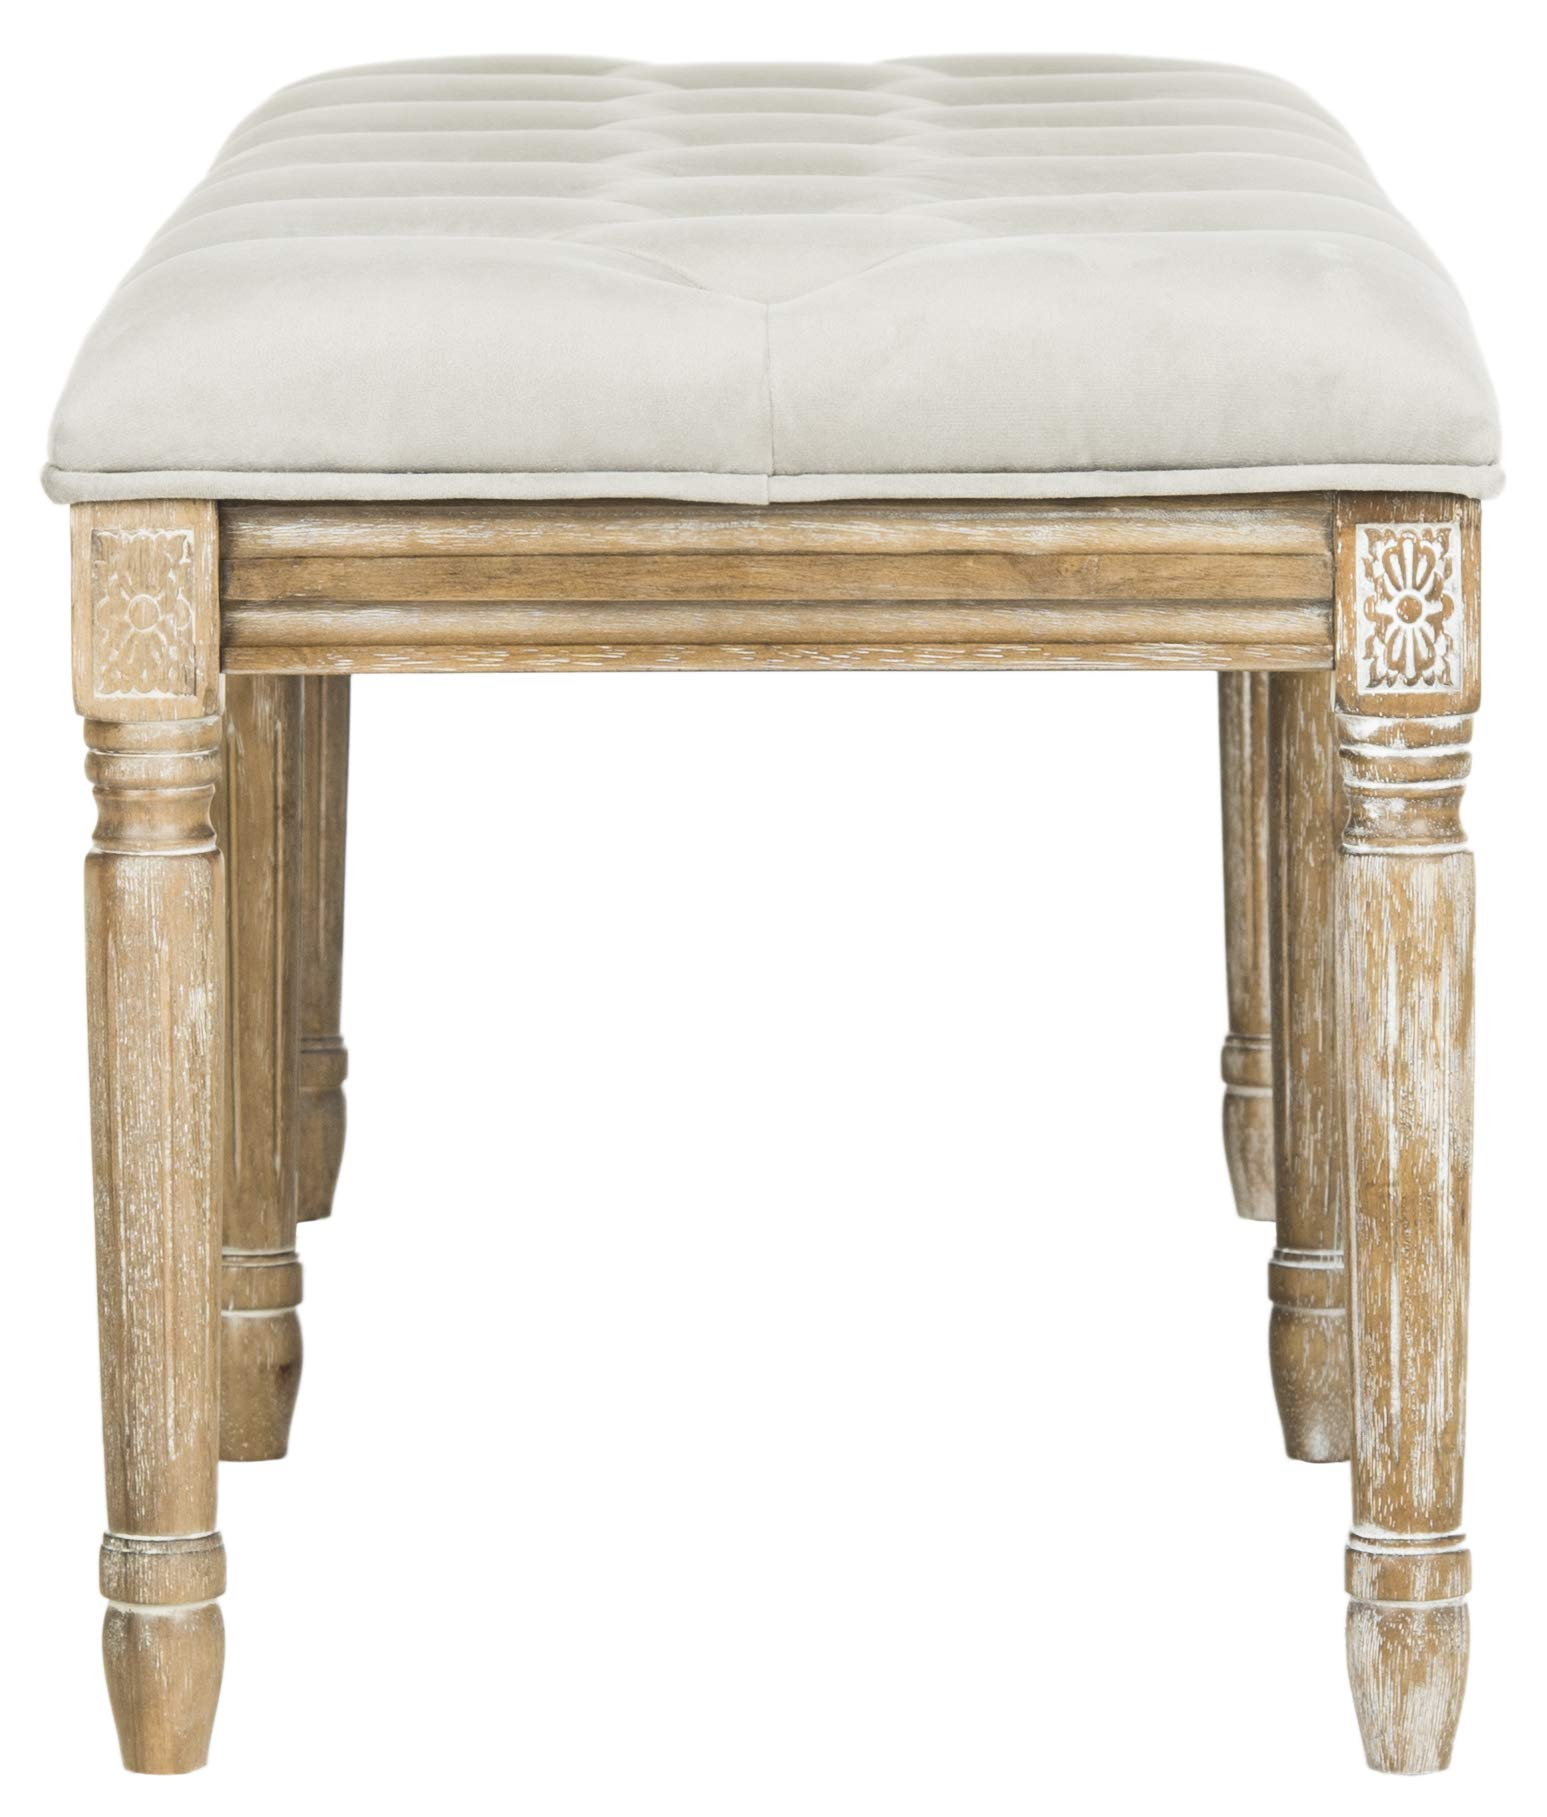 Safavieh Home Collection Rocha French Brasserie Tufted Grey and Rustic Oak 19-inch Wood Bench by Safavieh (Image #7)